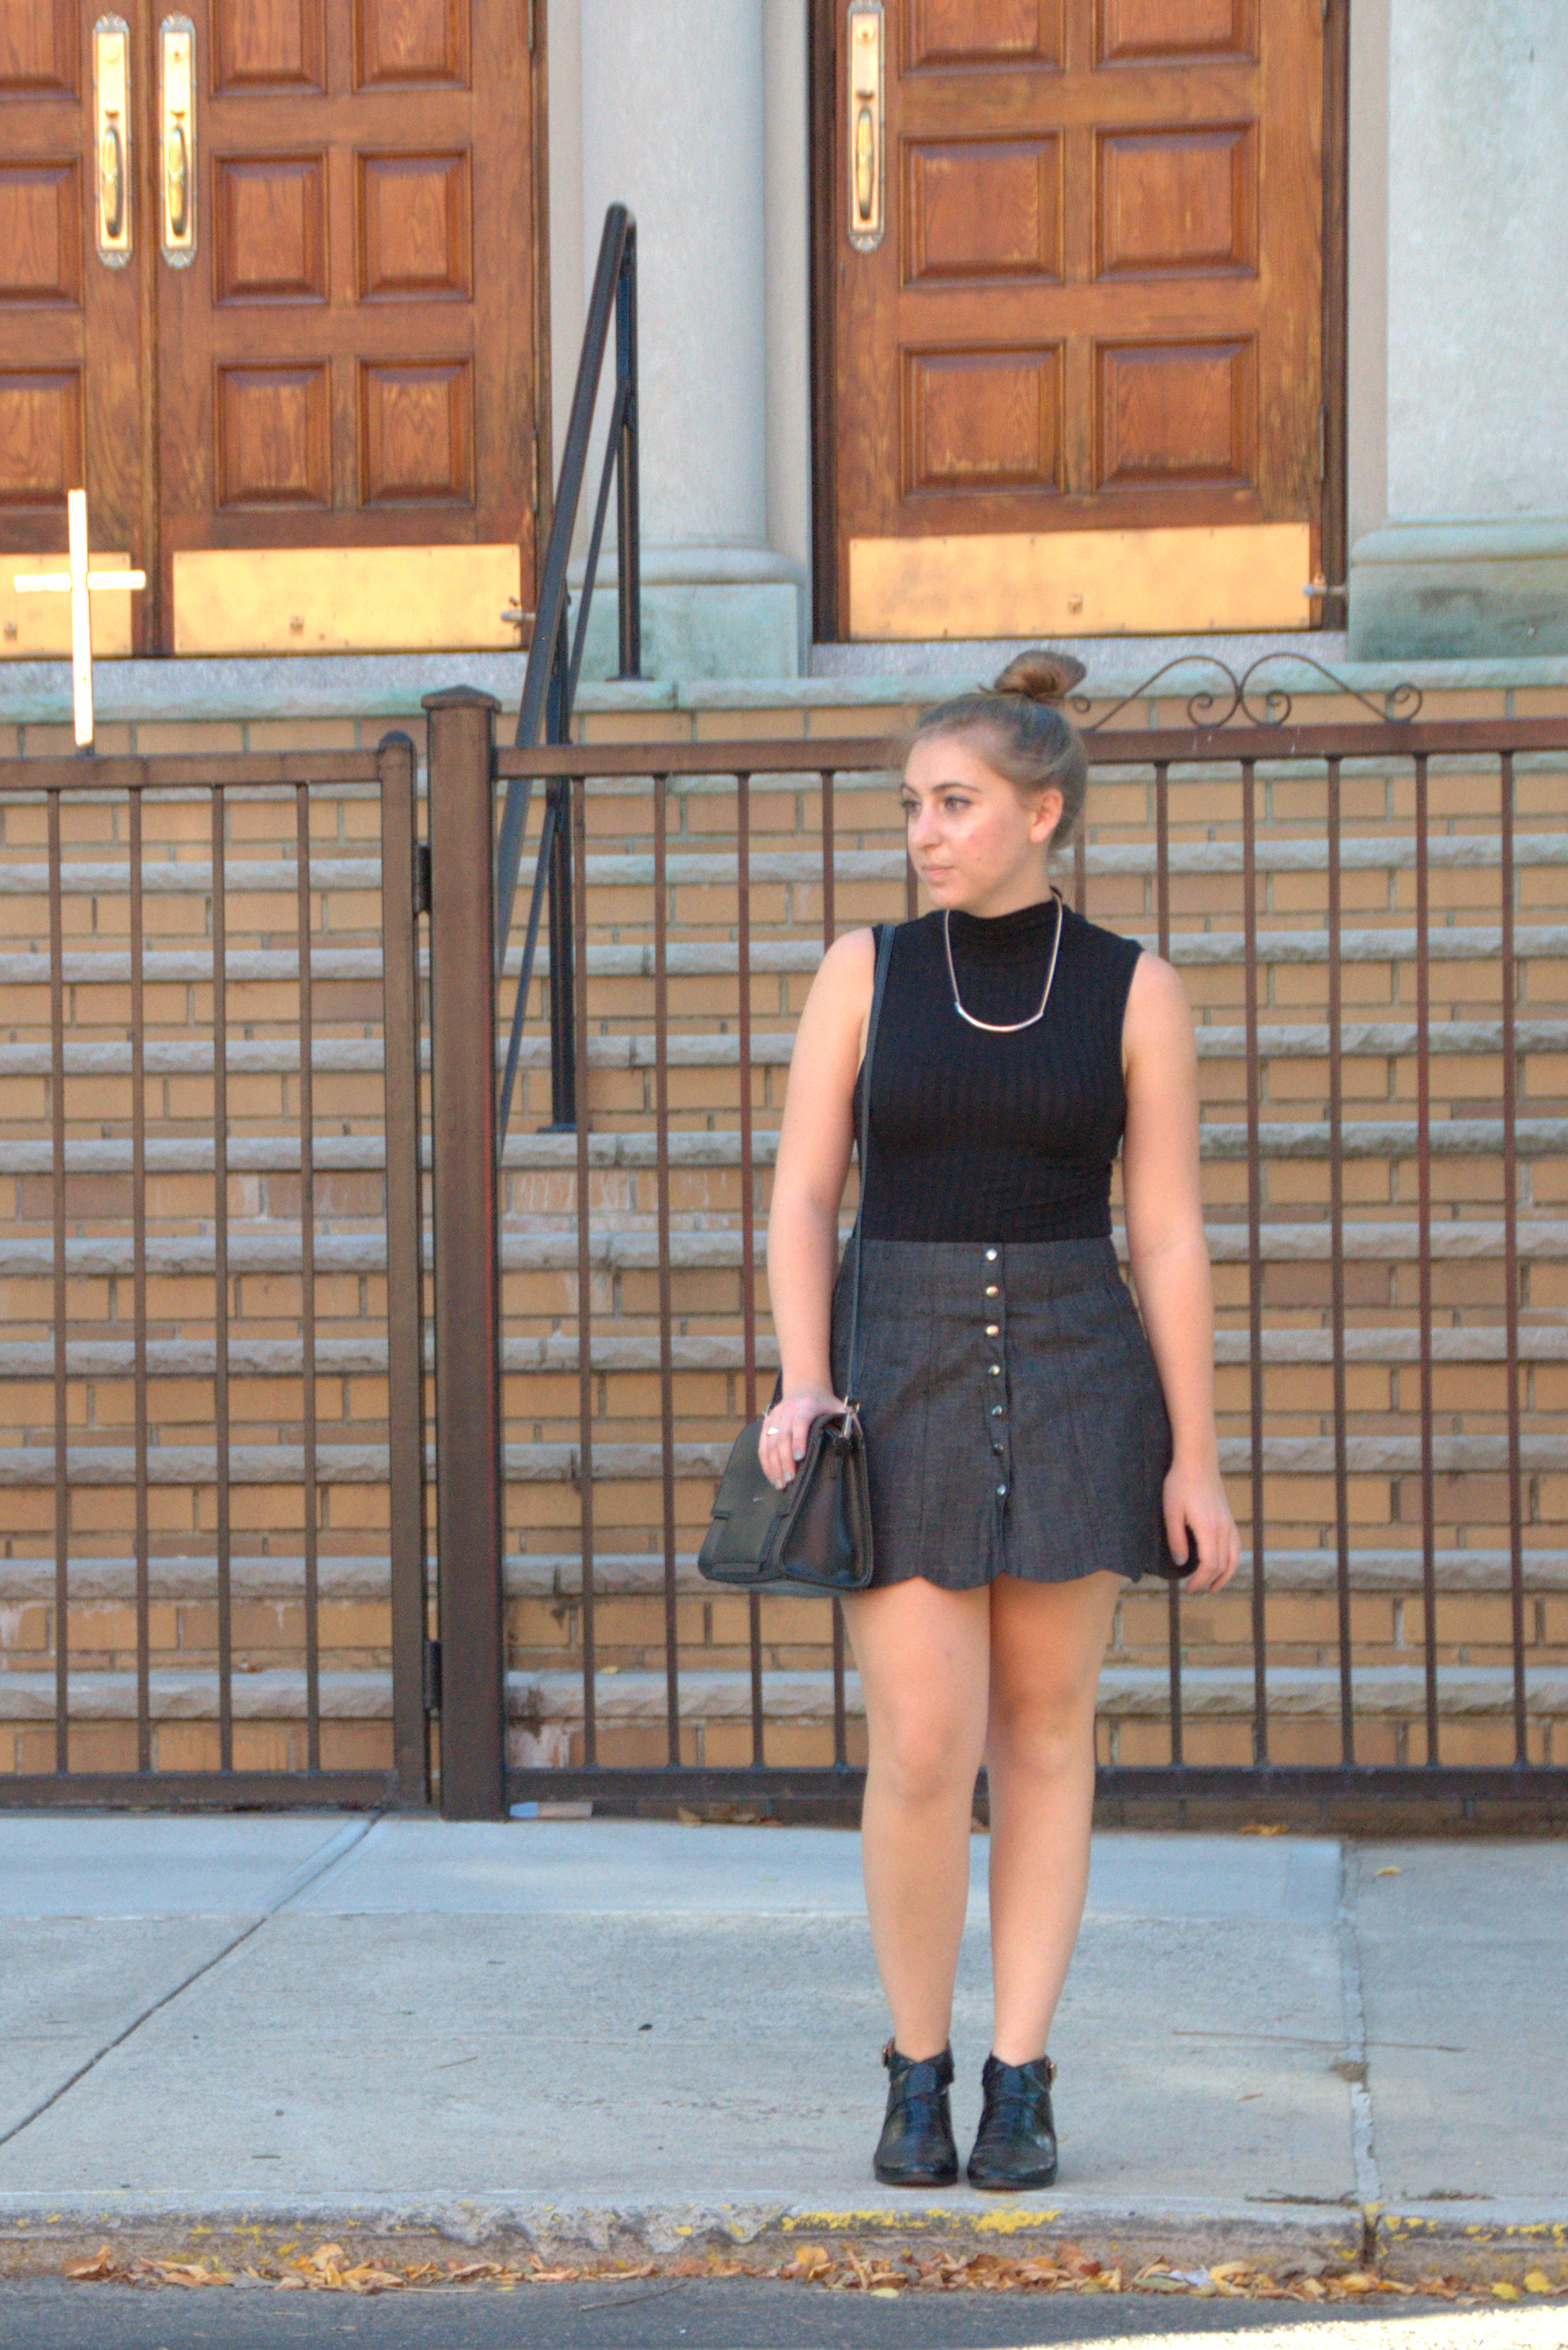 H&M Tank Top & Reformation Mini Skirt